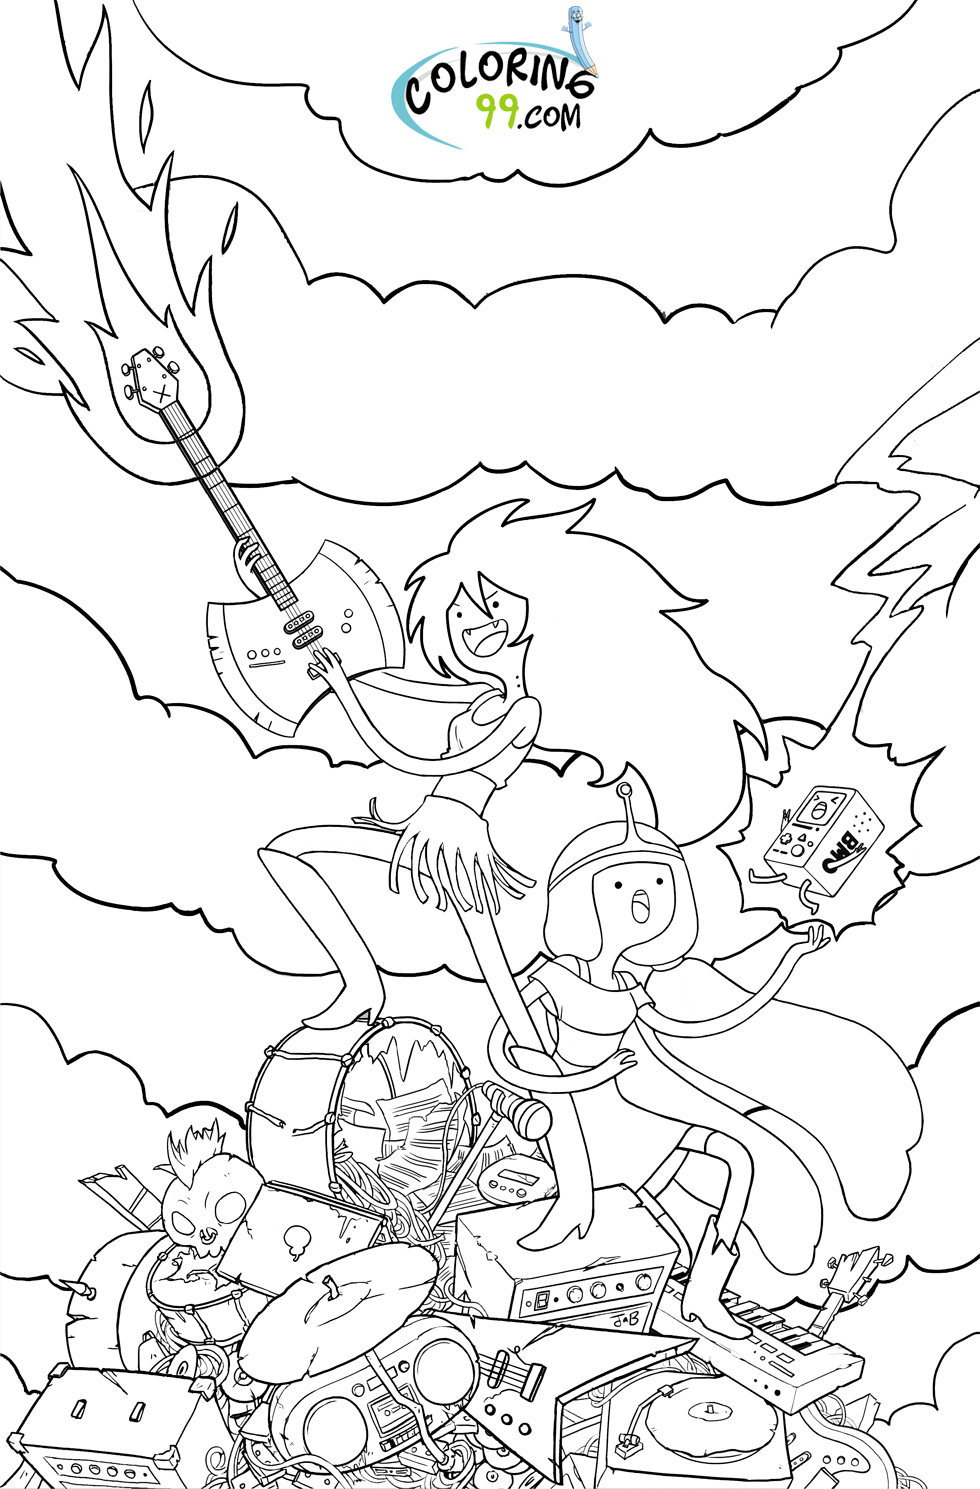 Adventure Time Coloring Pages | Team colors